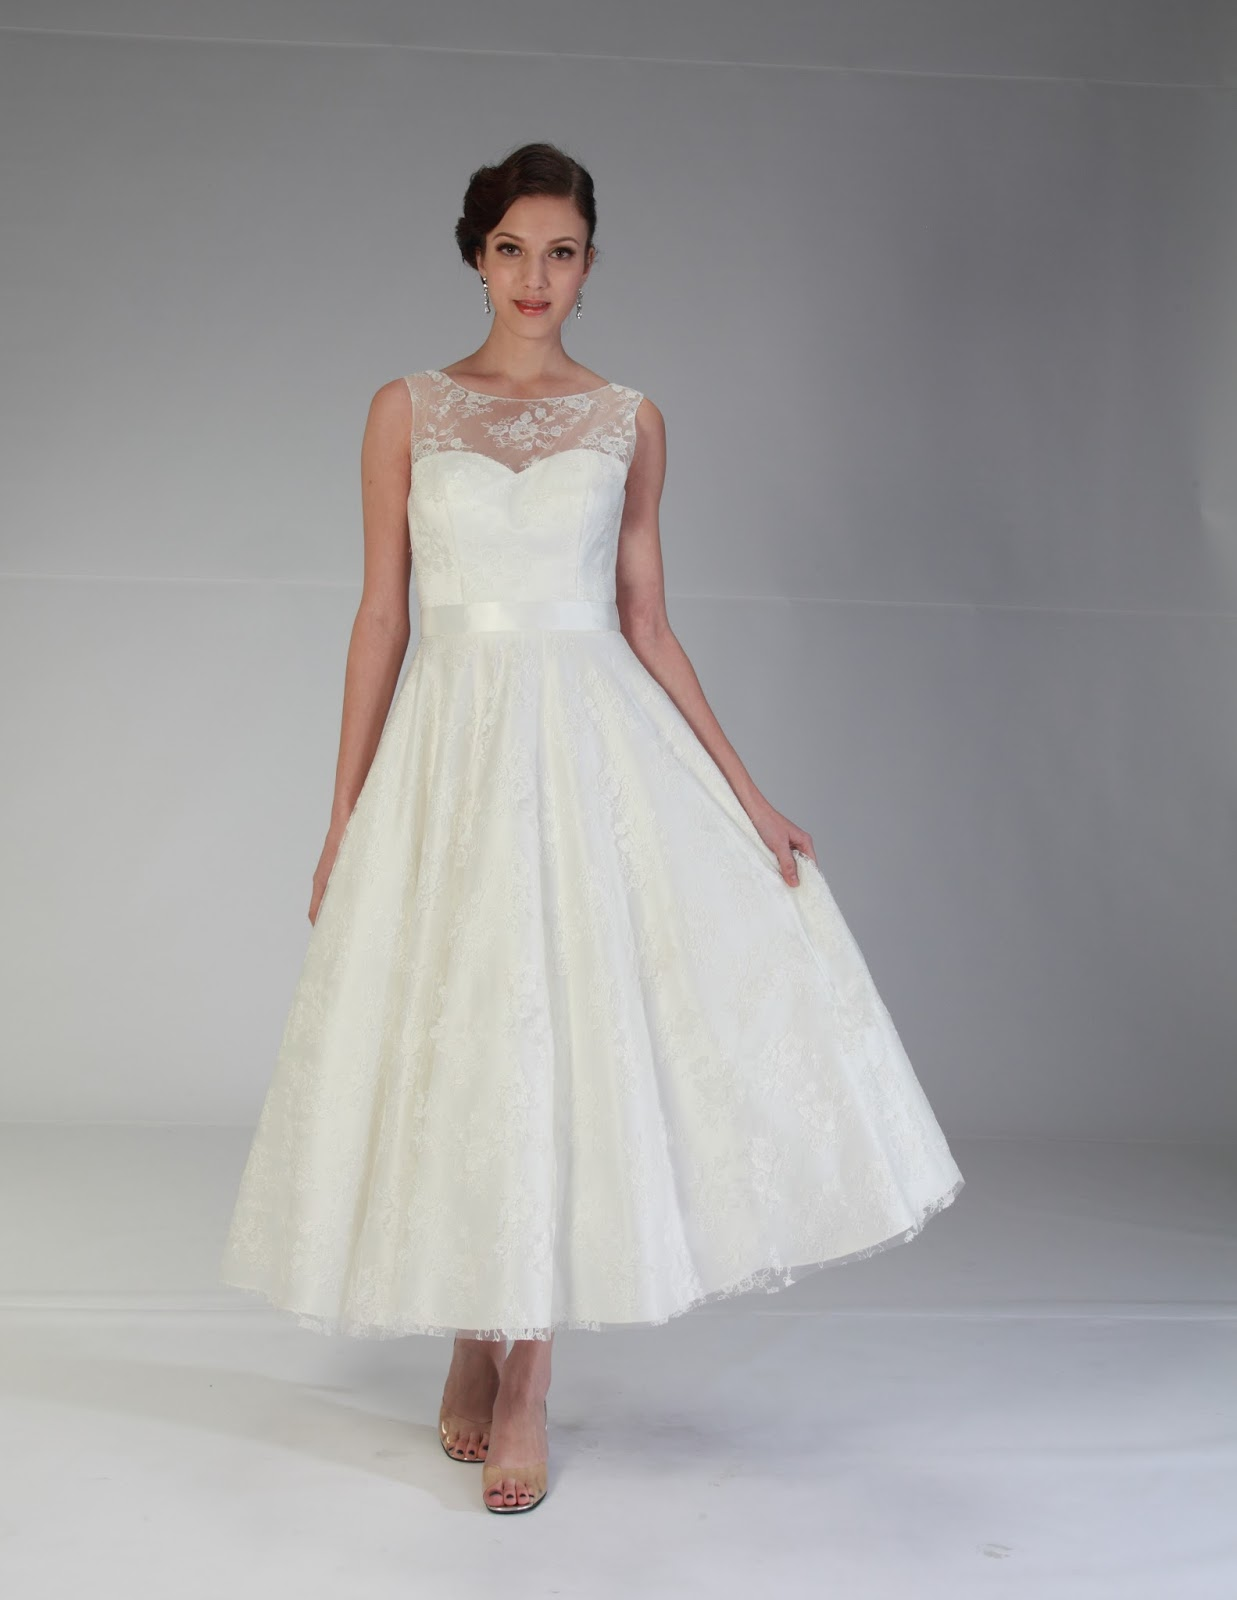 civil wedding dresses choosing the best wedding dress for a civil wedding 2970